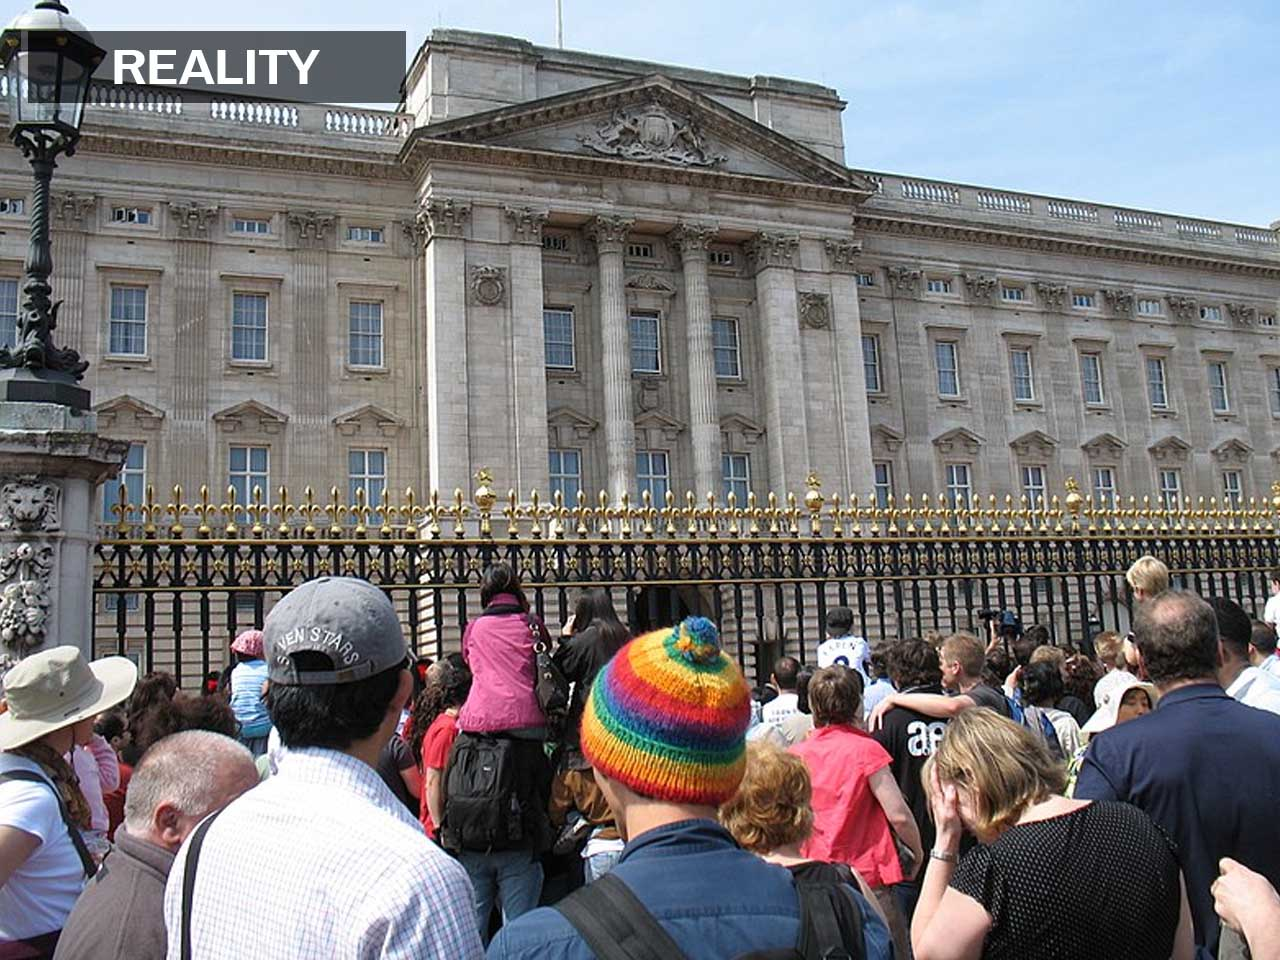 Apparently, *a lot* of people love watching Buckingham Palace's guards change.